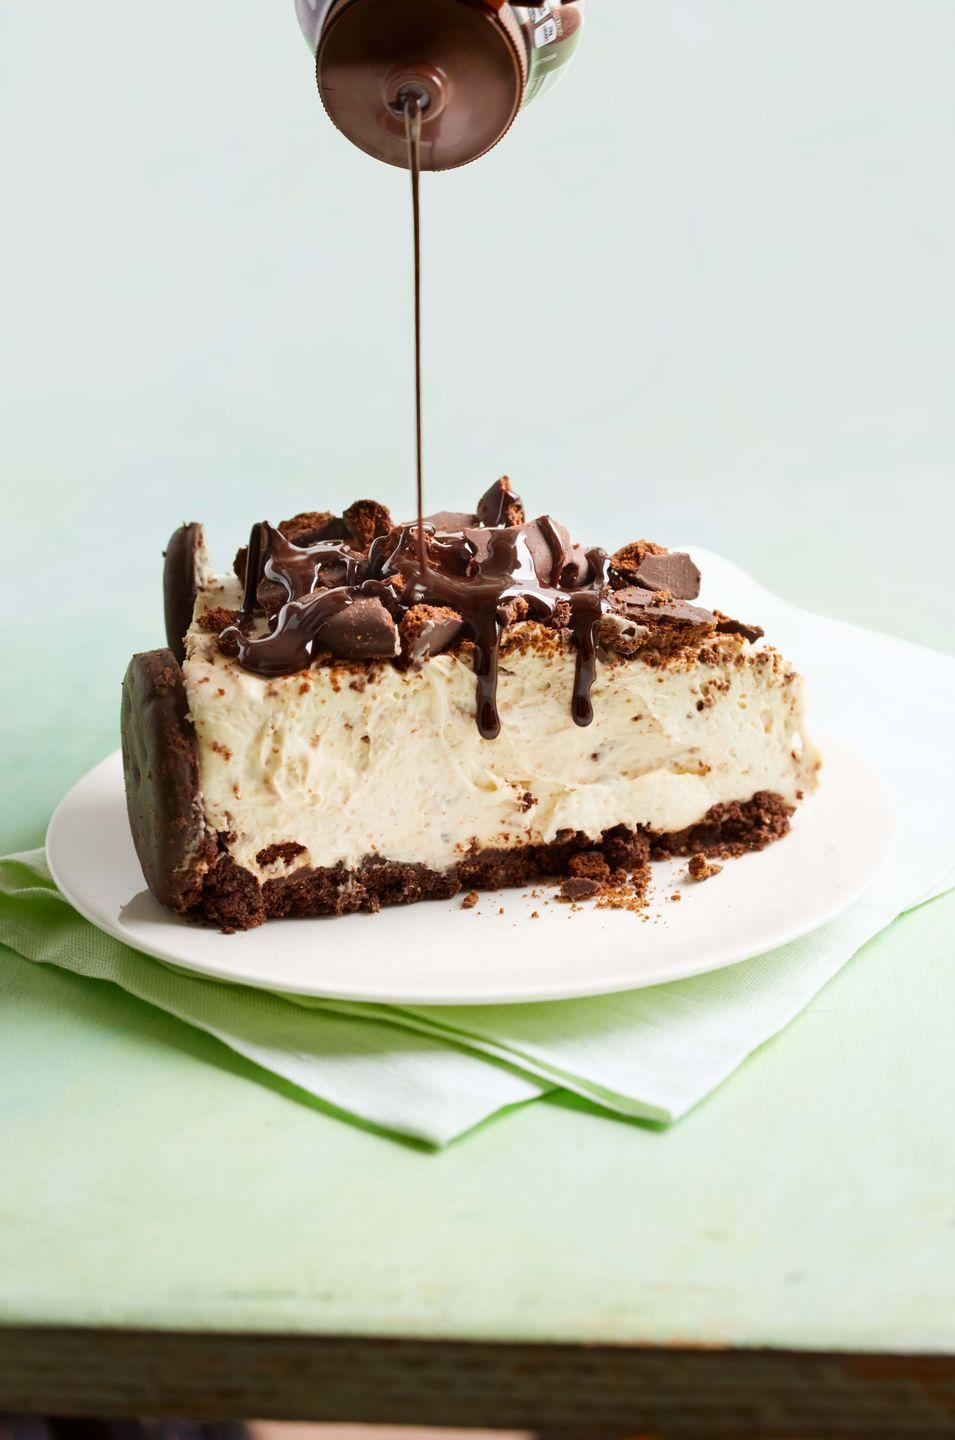 """<p>Yes way! The Girl Scouts' star cookie is the main ingredient in this no-bake cheesecake.</p><p><em><a href=""""https://www.womansday.com/food-recipes/recipes/a57465/thin-mint-cheesecake-recipe/"""" rel=""""nofollow noopener"""" target=""""_blank"""" data-ylk=""""slk:Get the recipe from Woman's Day »"""" class=""""link rapid-noclick-resp"""">Get the recipe from Woman's Day »</a></em></p>"""